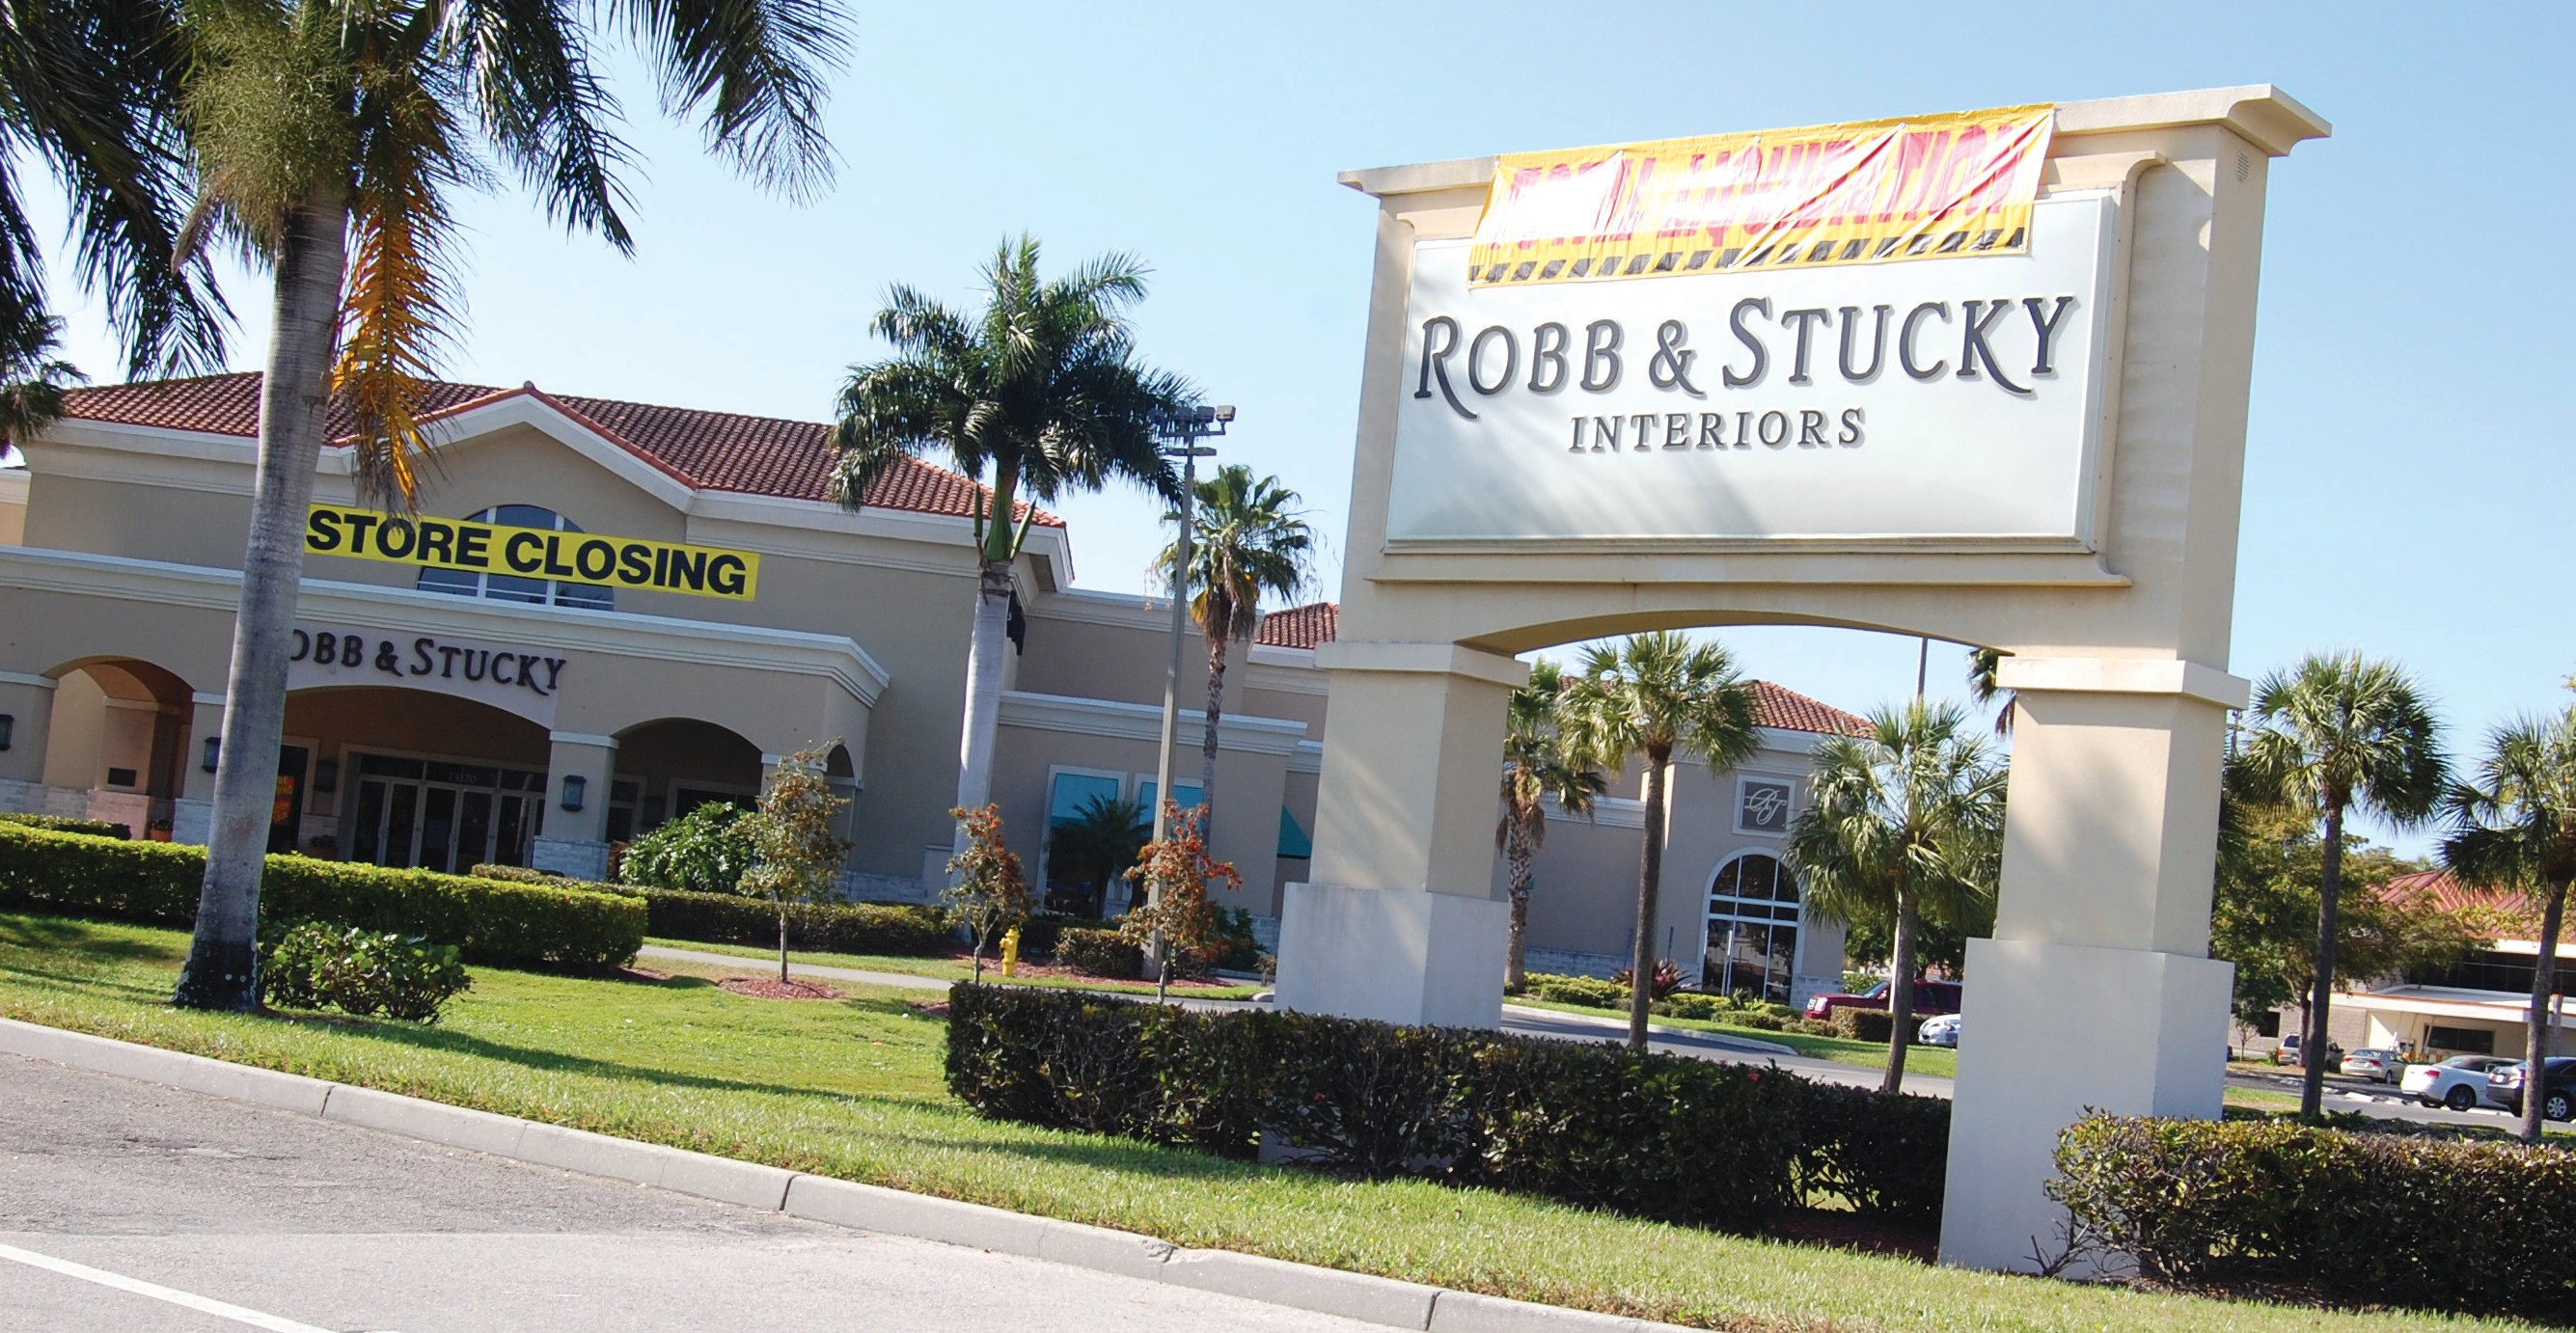 Inventory At The Robb Stucky In Fort Myers Is Being Liquidated Along With